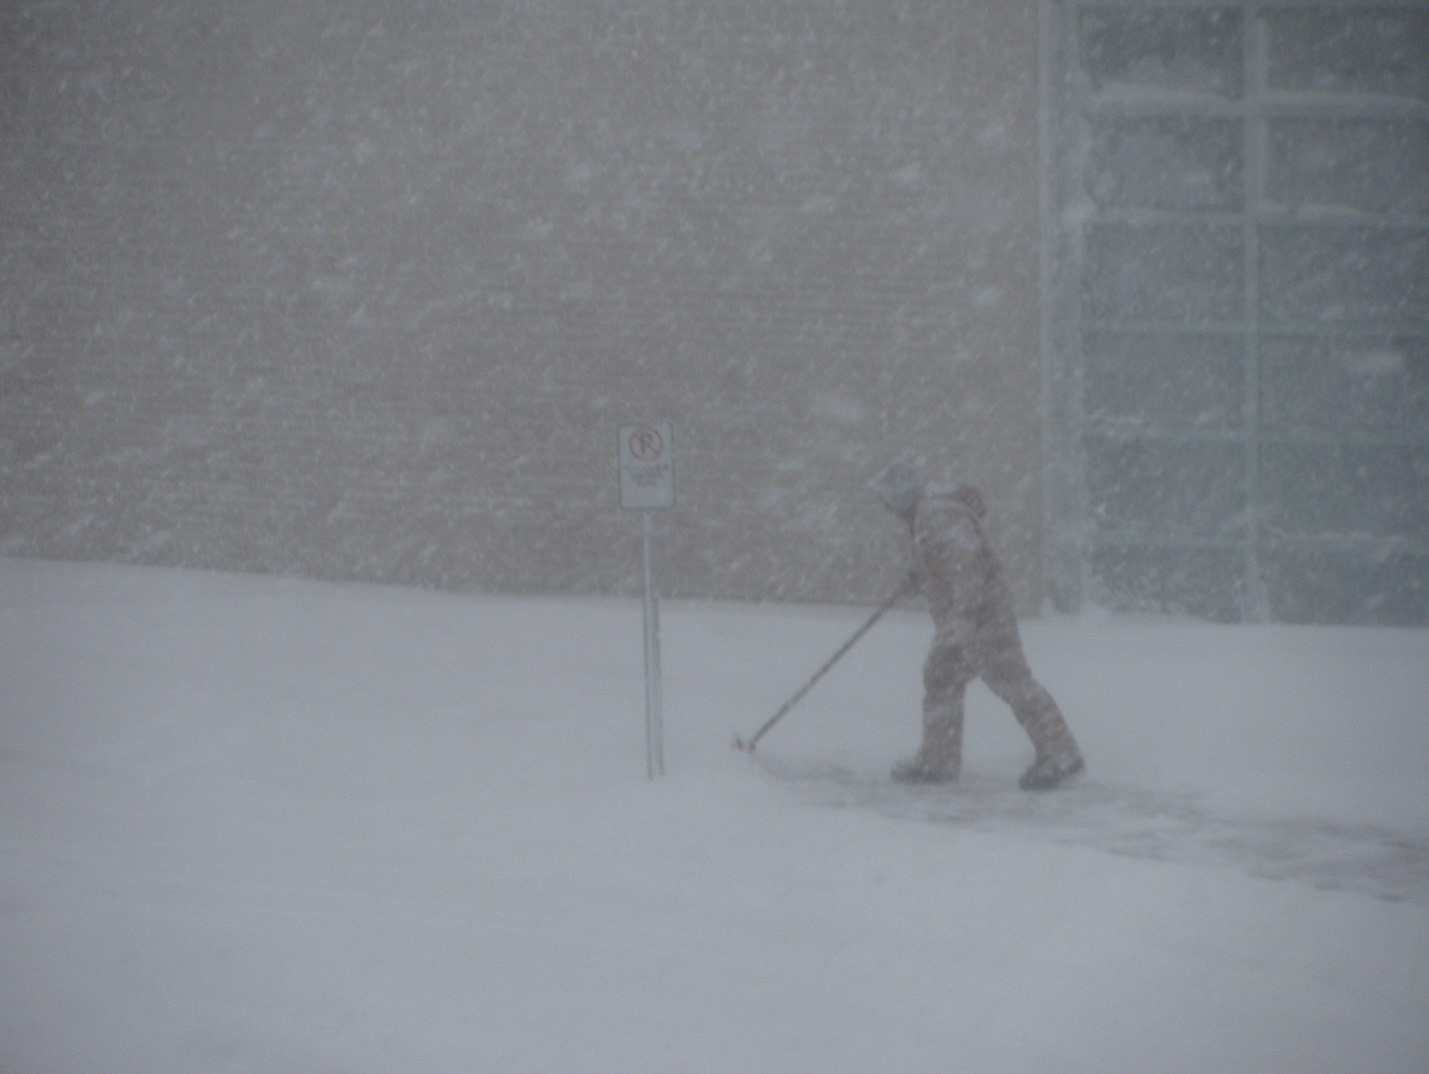 man shovelling in snowstorm